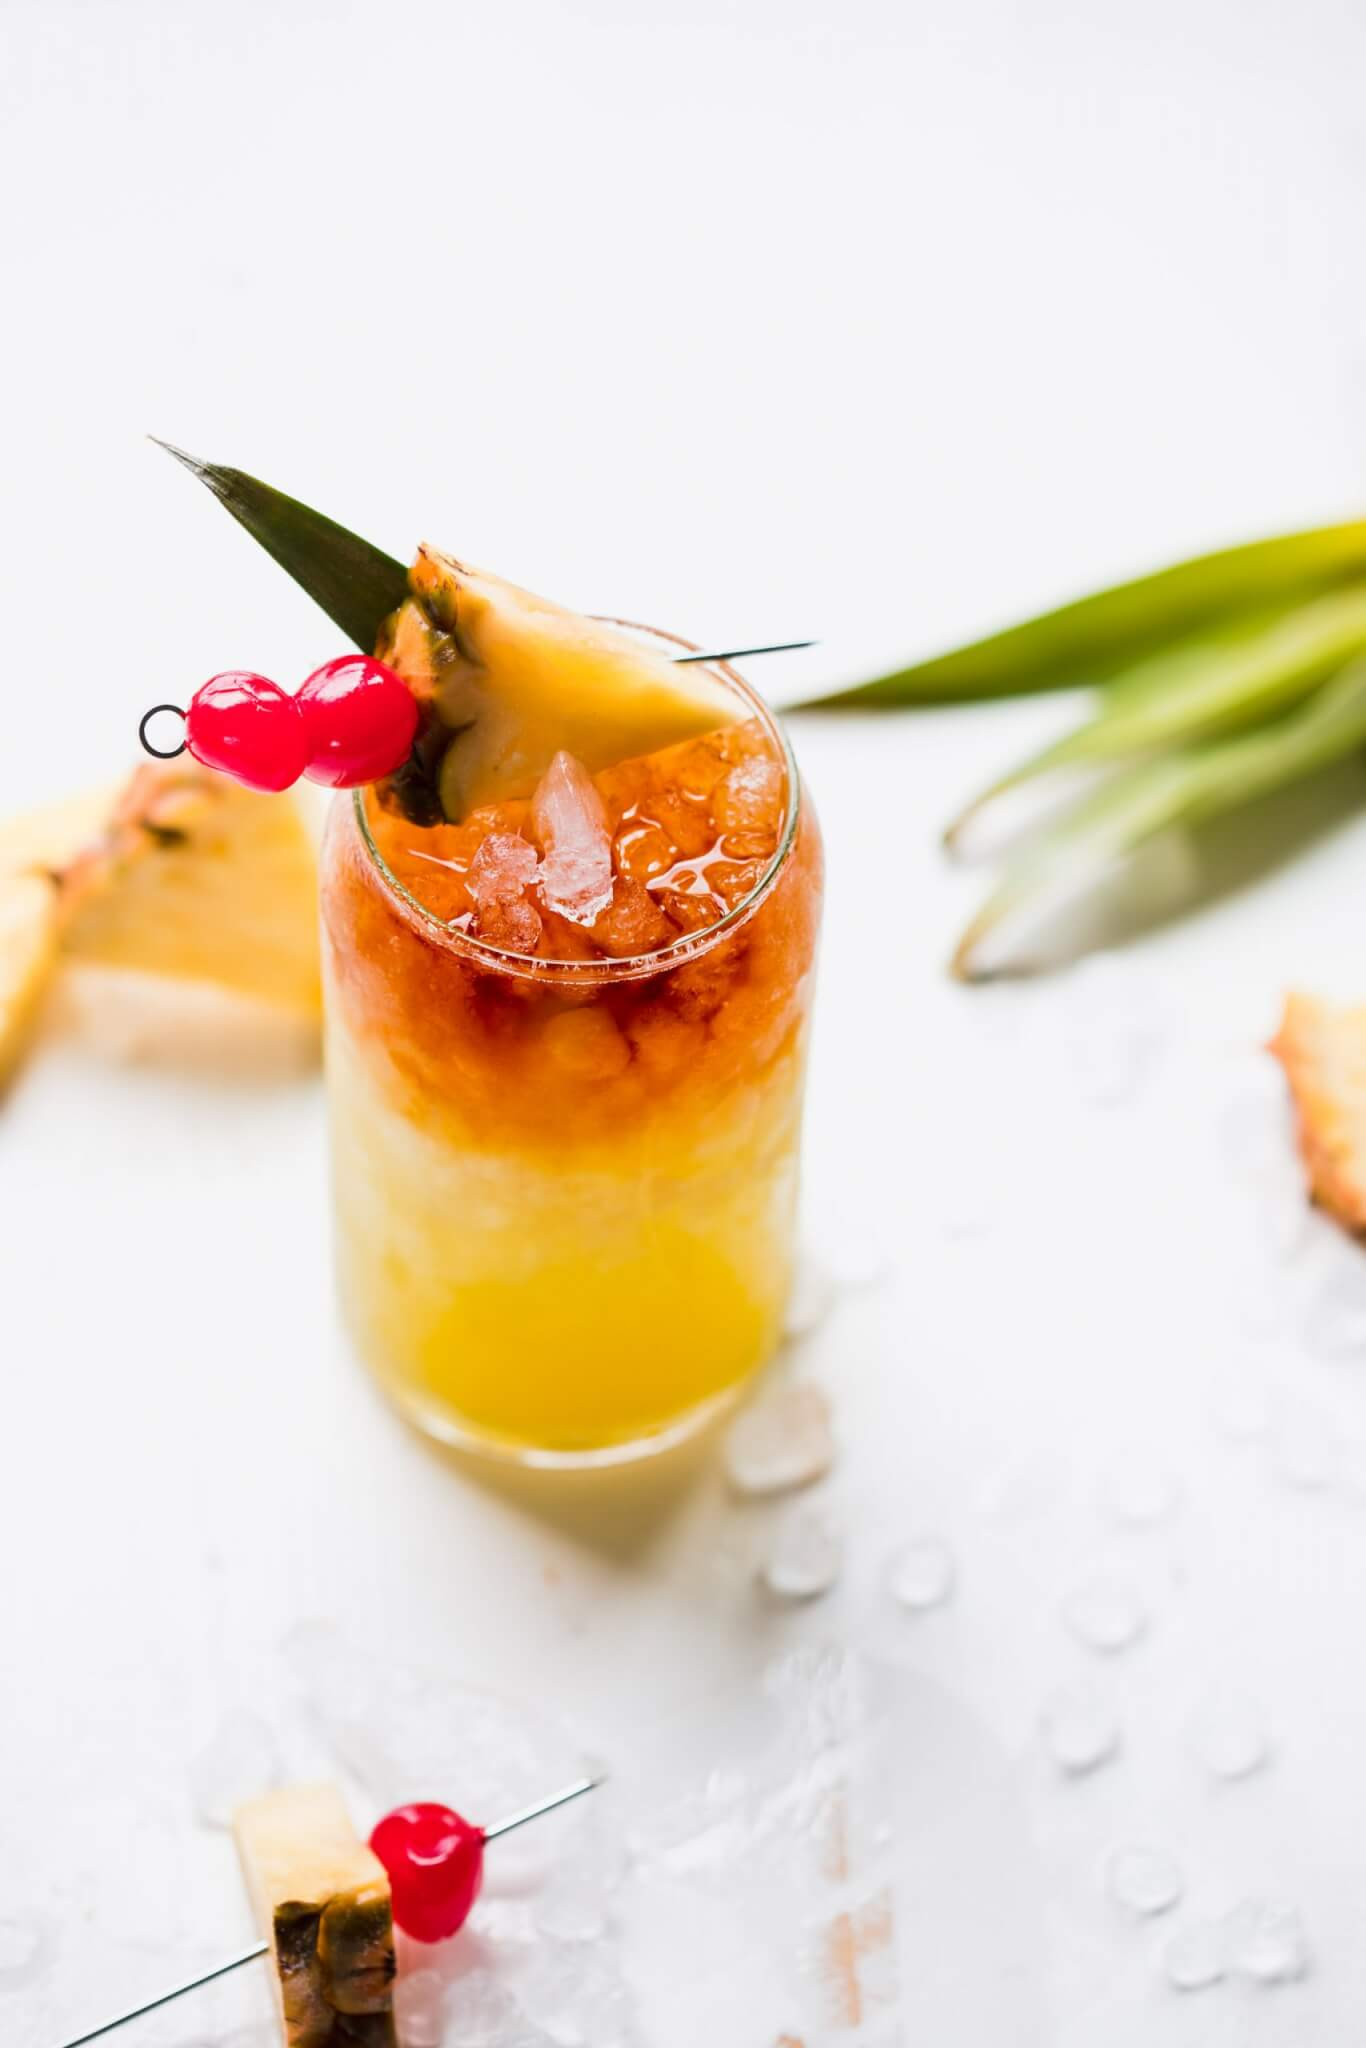 Mai tai in glass garnished with pineapple wedge and cherries.